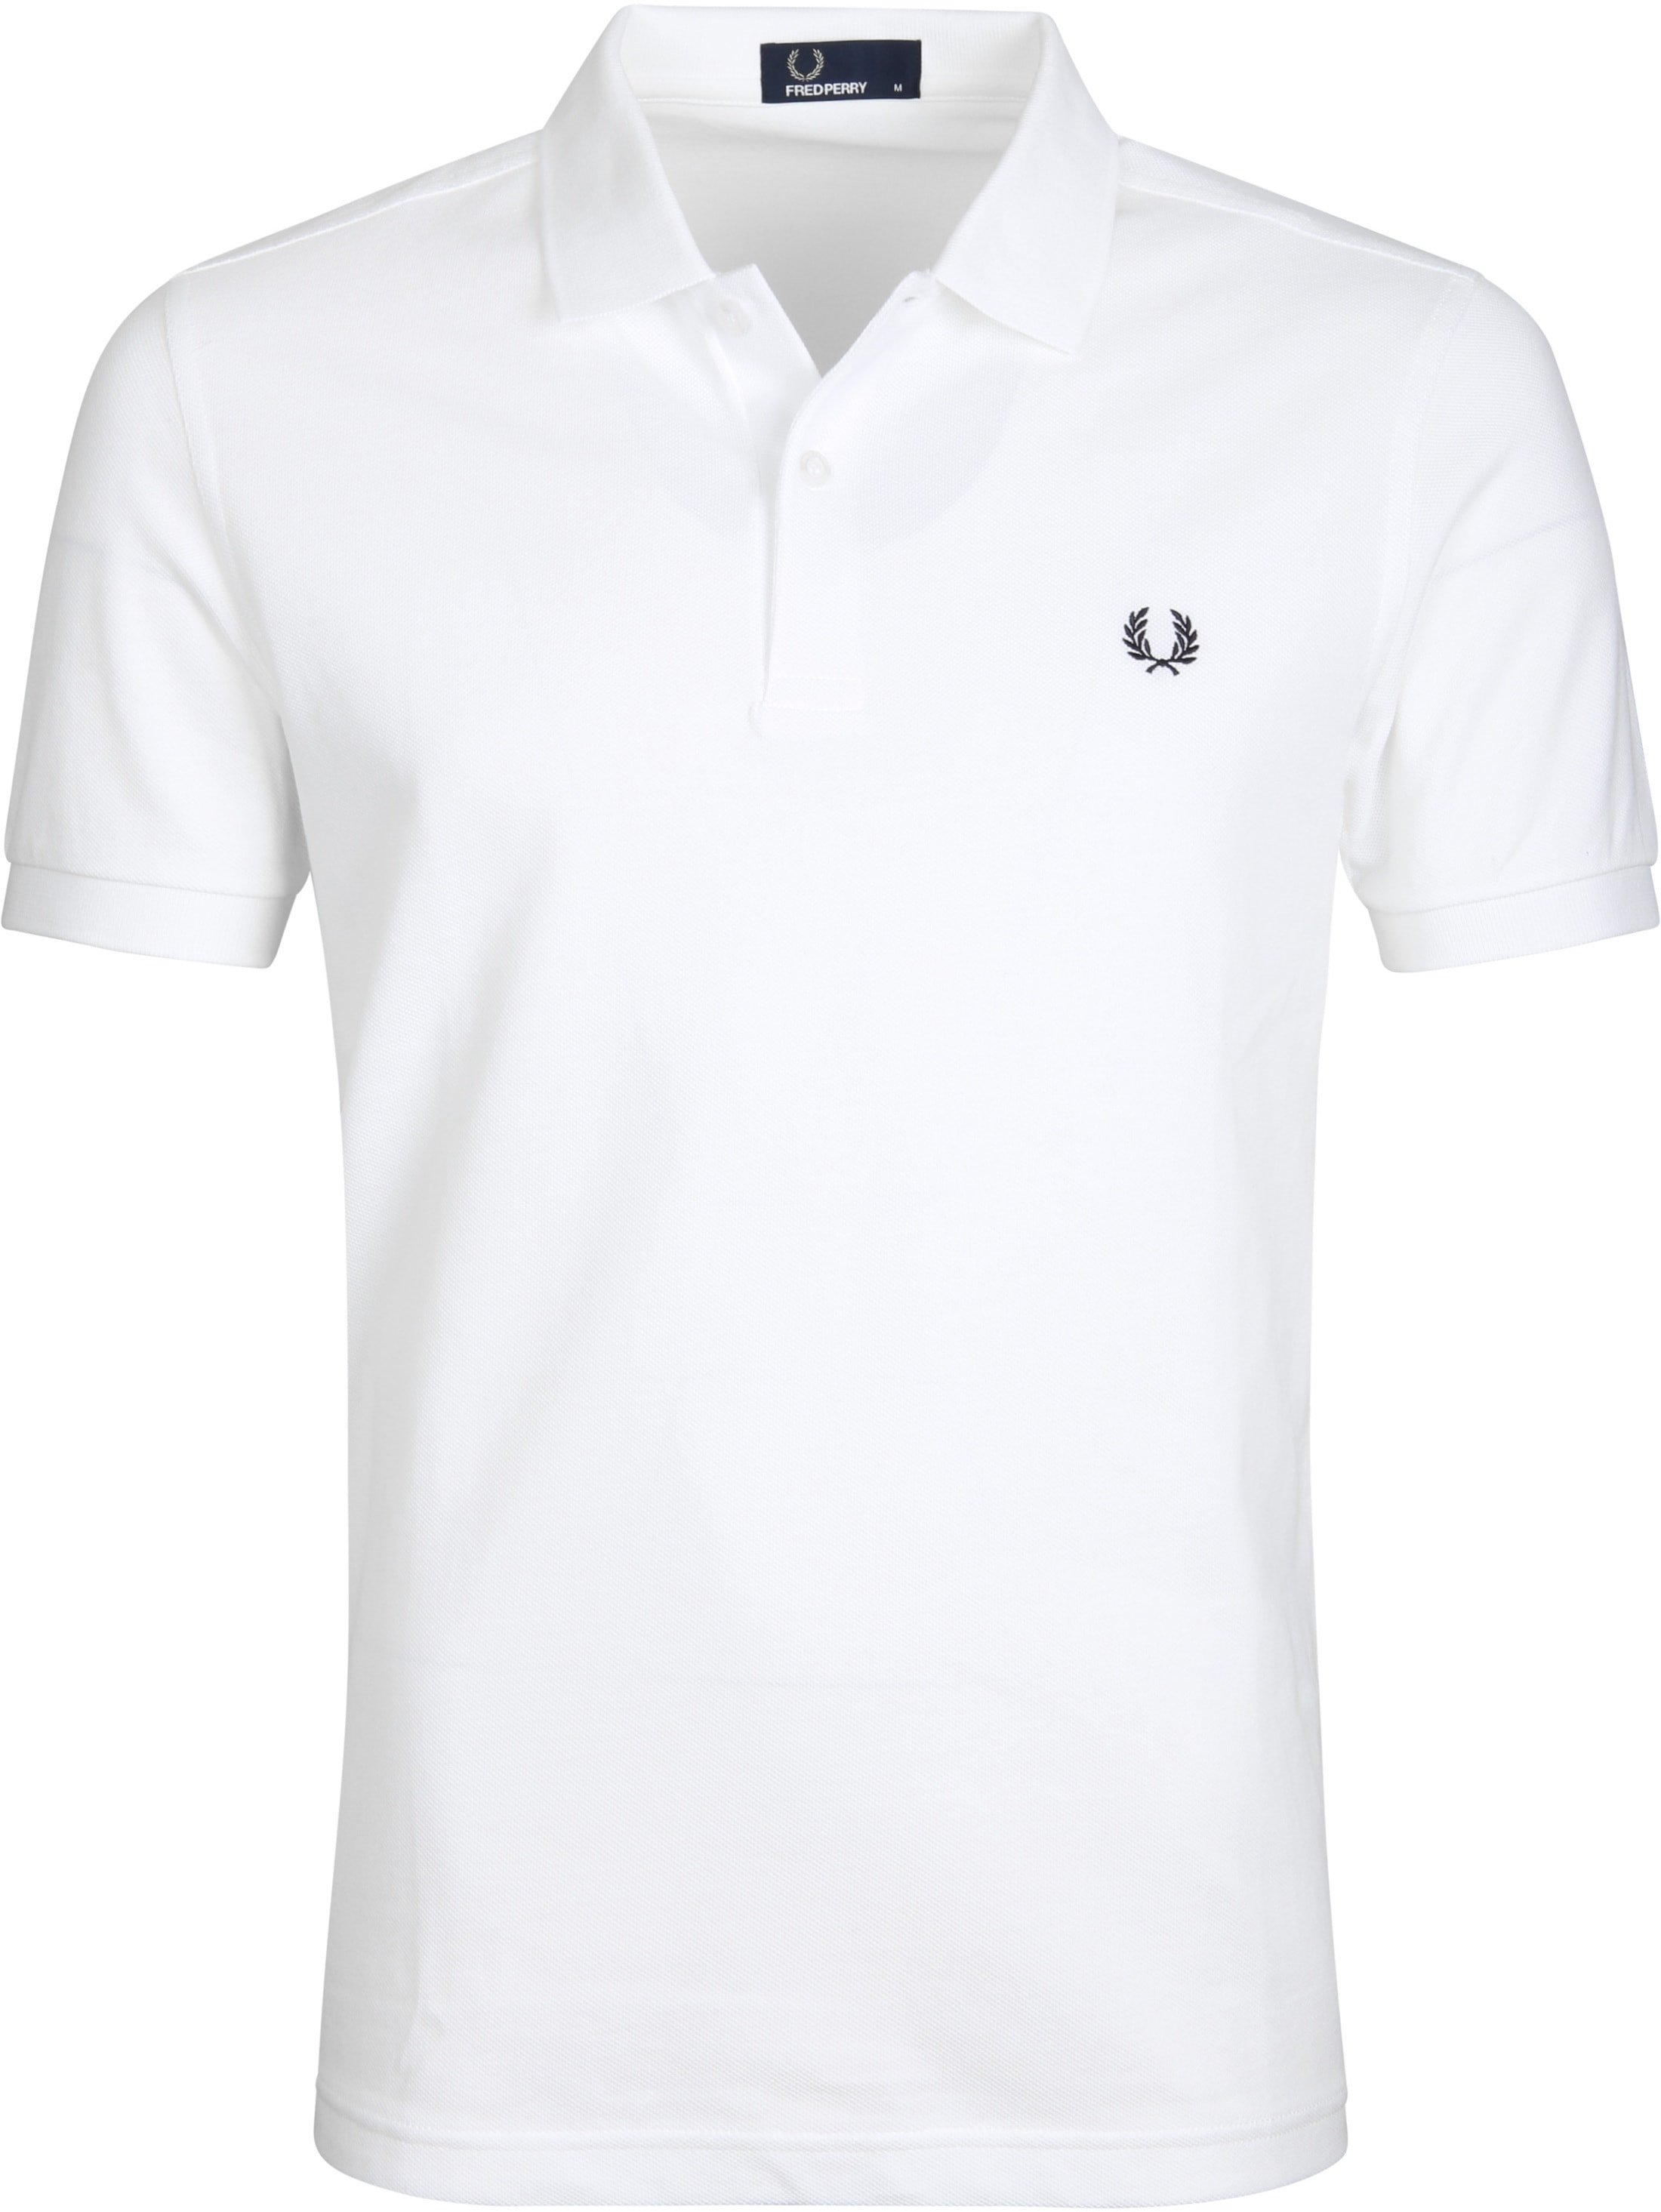 Fred Perry Poloshirt Wit foto 0